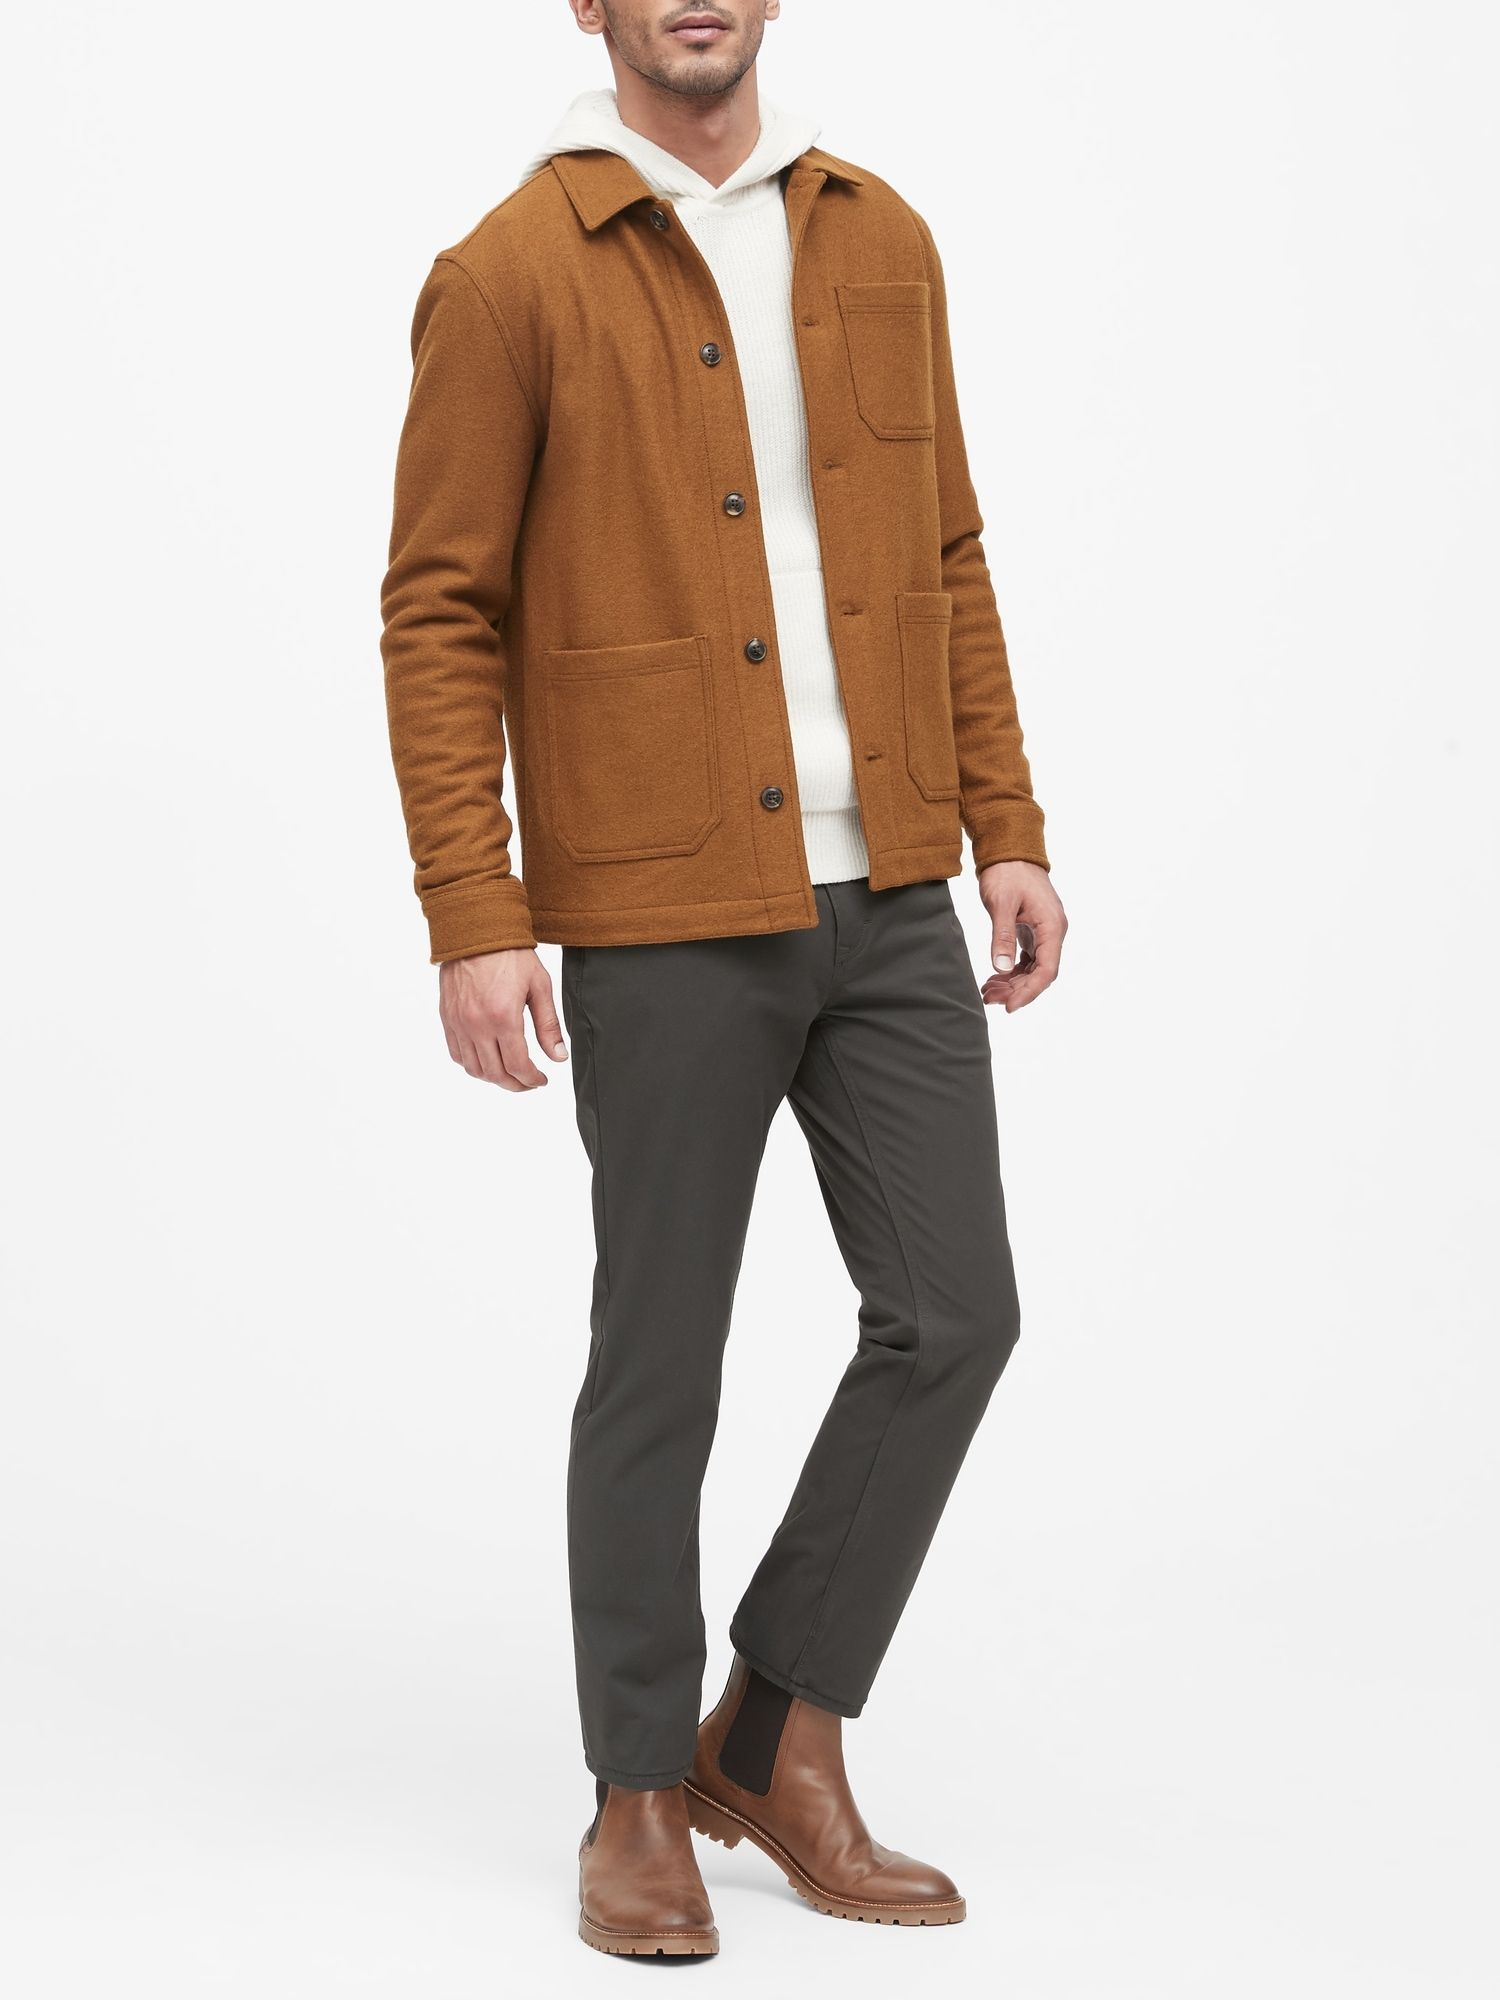 Wool Blend Chore Jacket Banana Republic Refined Clothing Business Casual Outfits Chore Jacket [ 2000 x 1500 Pixel ]